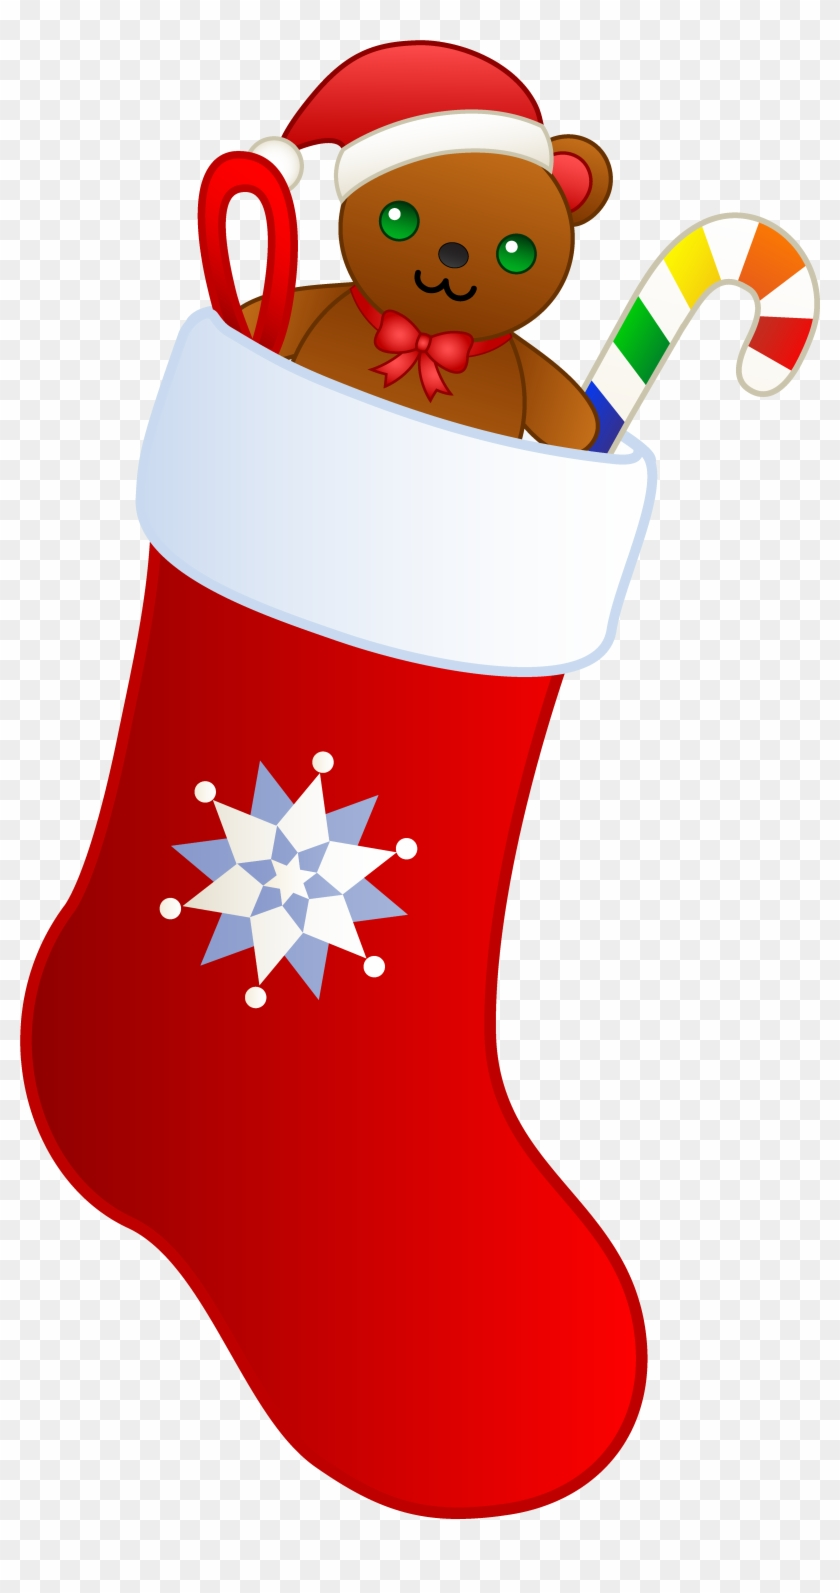 Christmas Stocking With Teddy - Christmas Stocking Clip Art #1071119